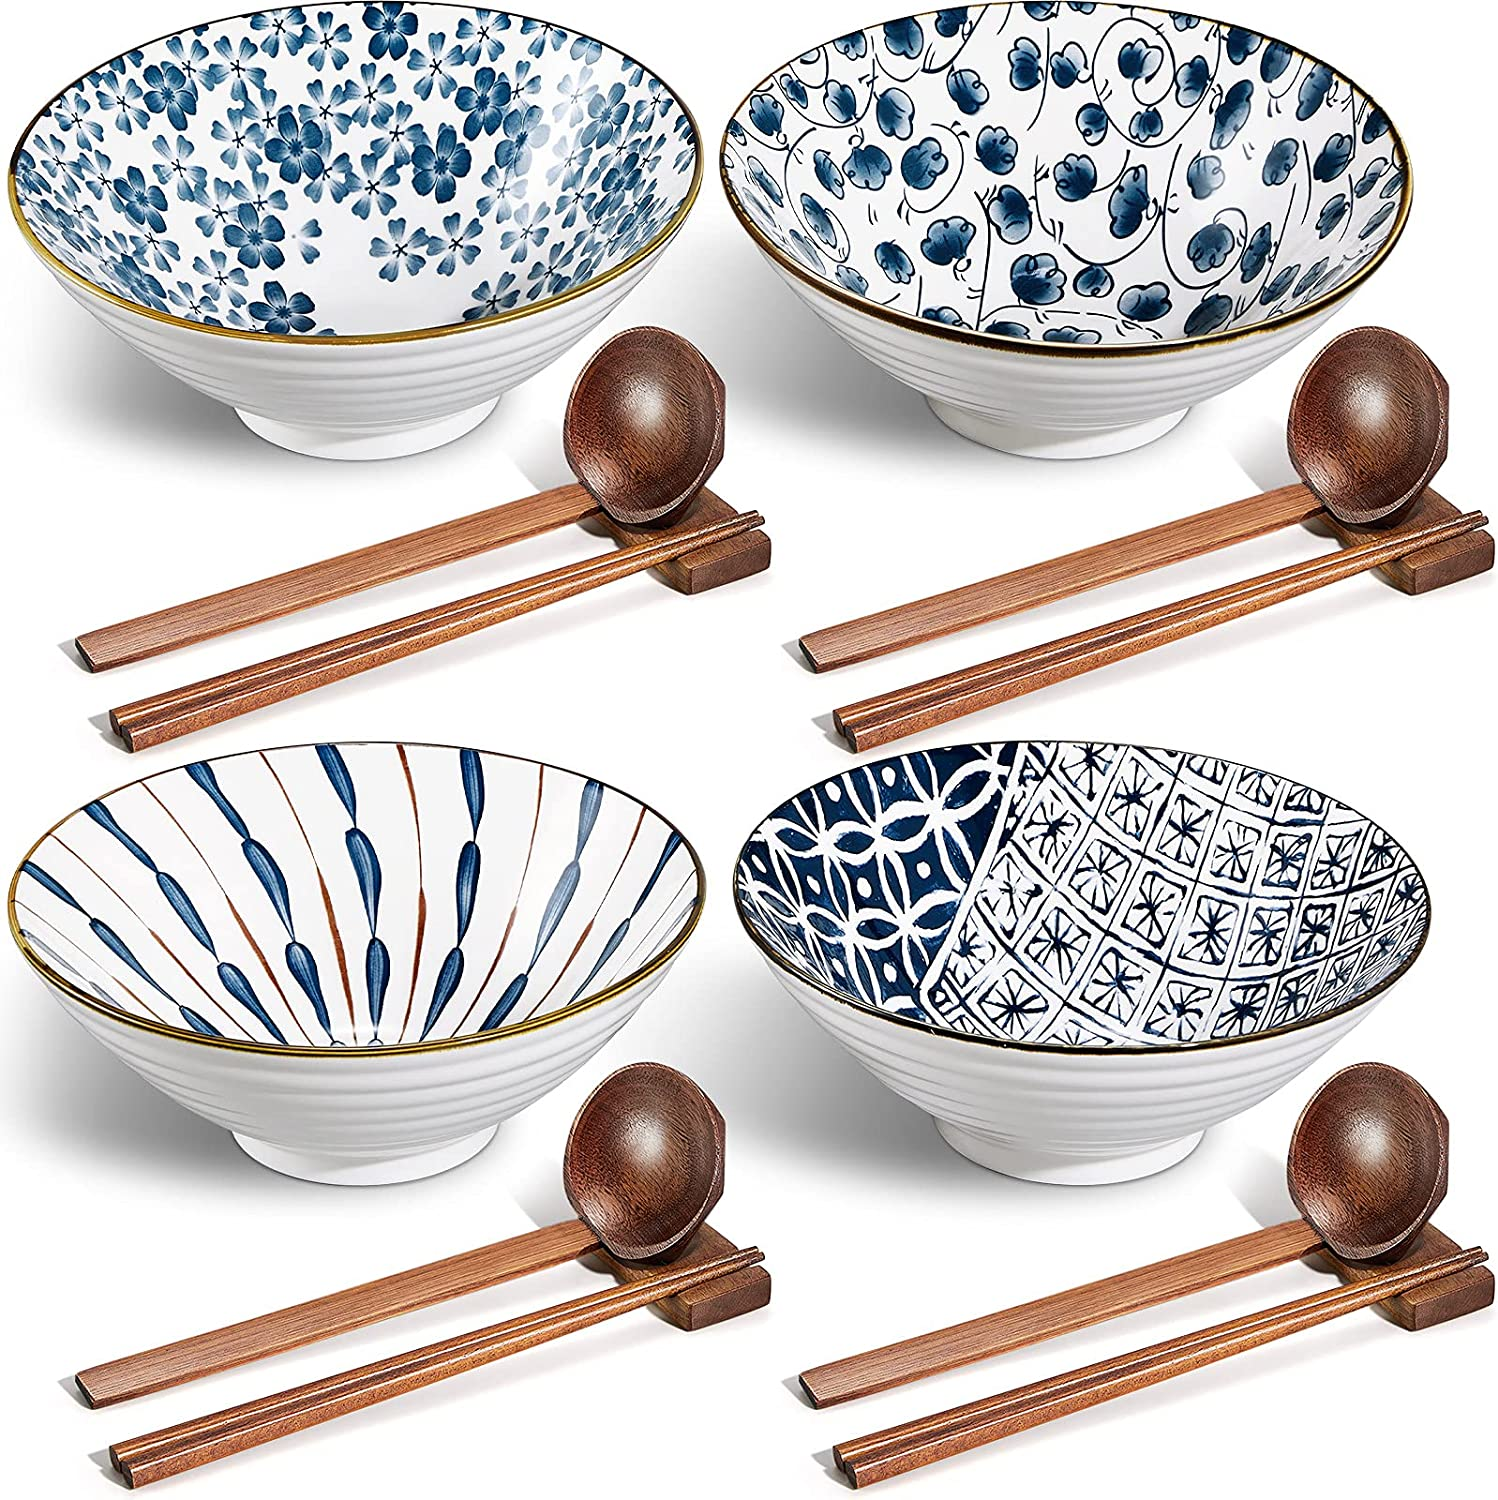 Ceramic Ramen Bowl 40 Limited Special Price oz Japanese Noodle with Large Daily bargain sale Bowls Spoon